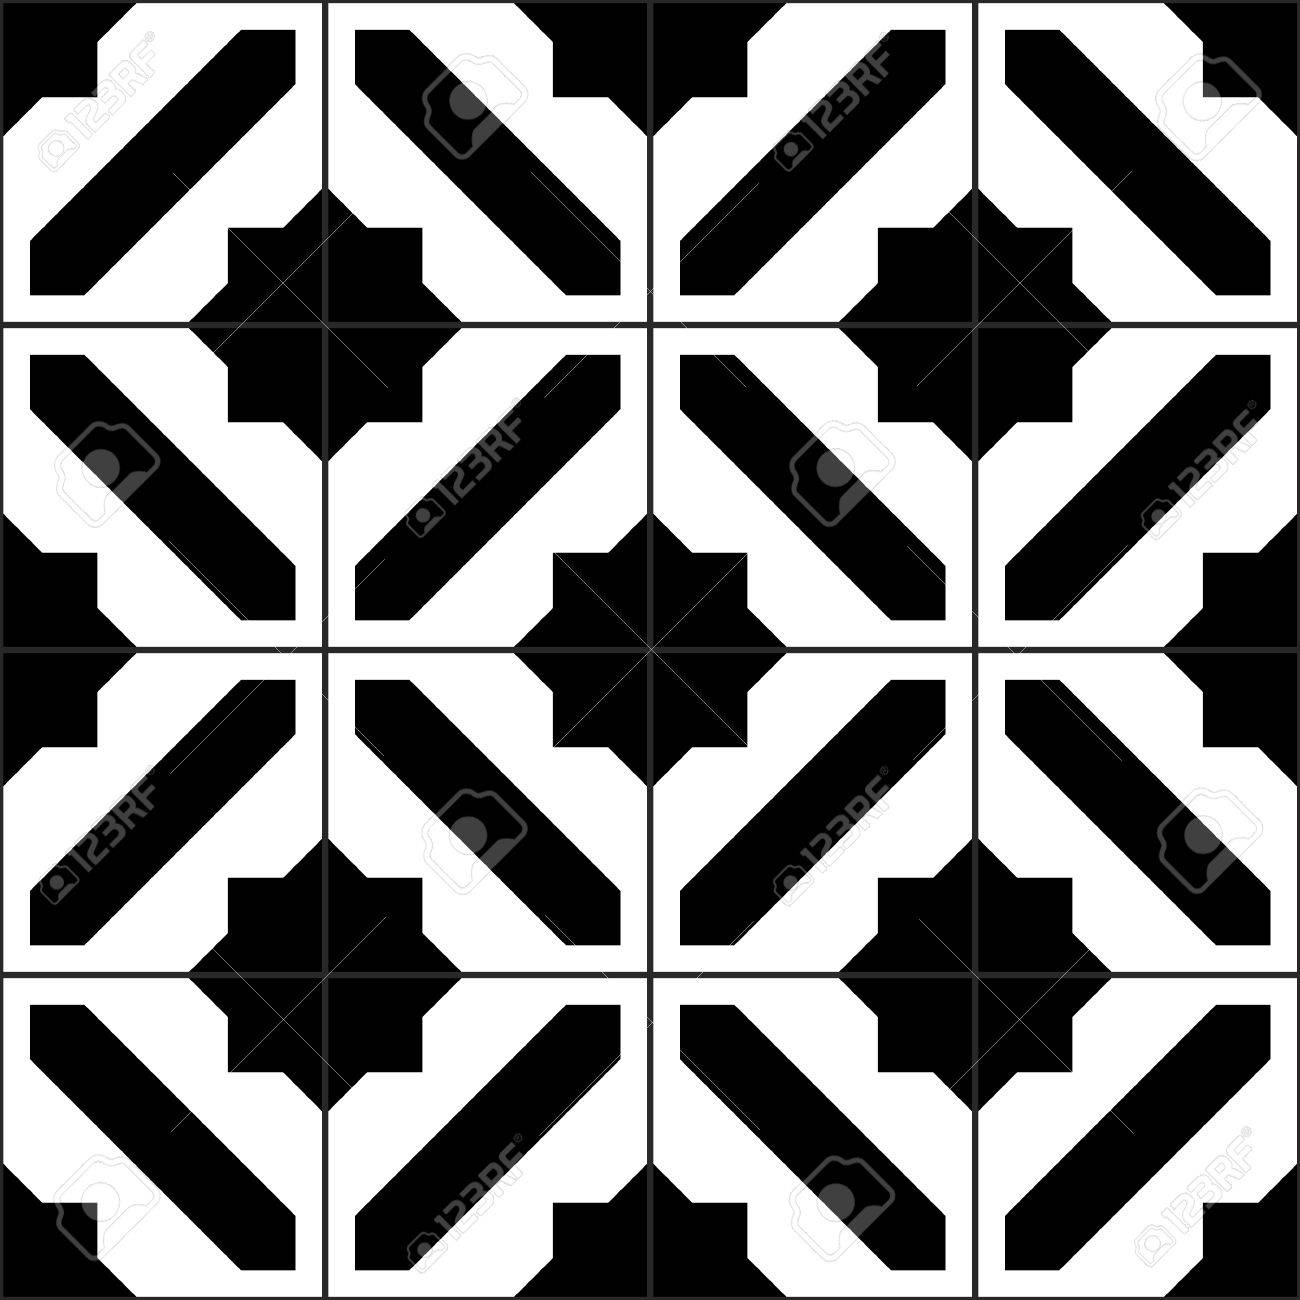 Vector of moroccan tile seamless pattern tile for design tile - Black And White Moroccan Tiles Seamless Pattern Vector Background Stock Vector 46077112